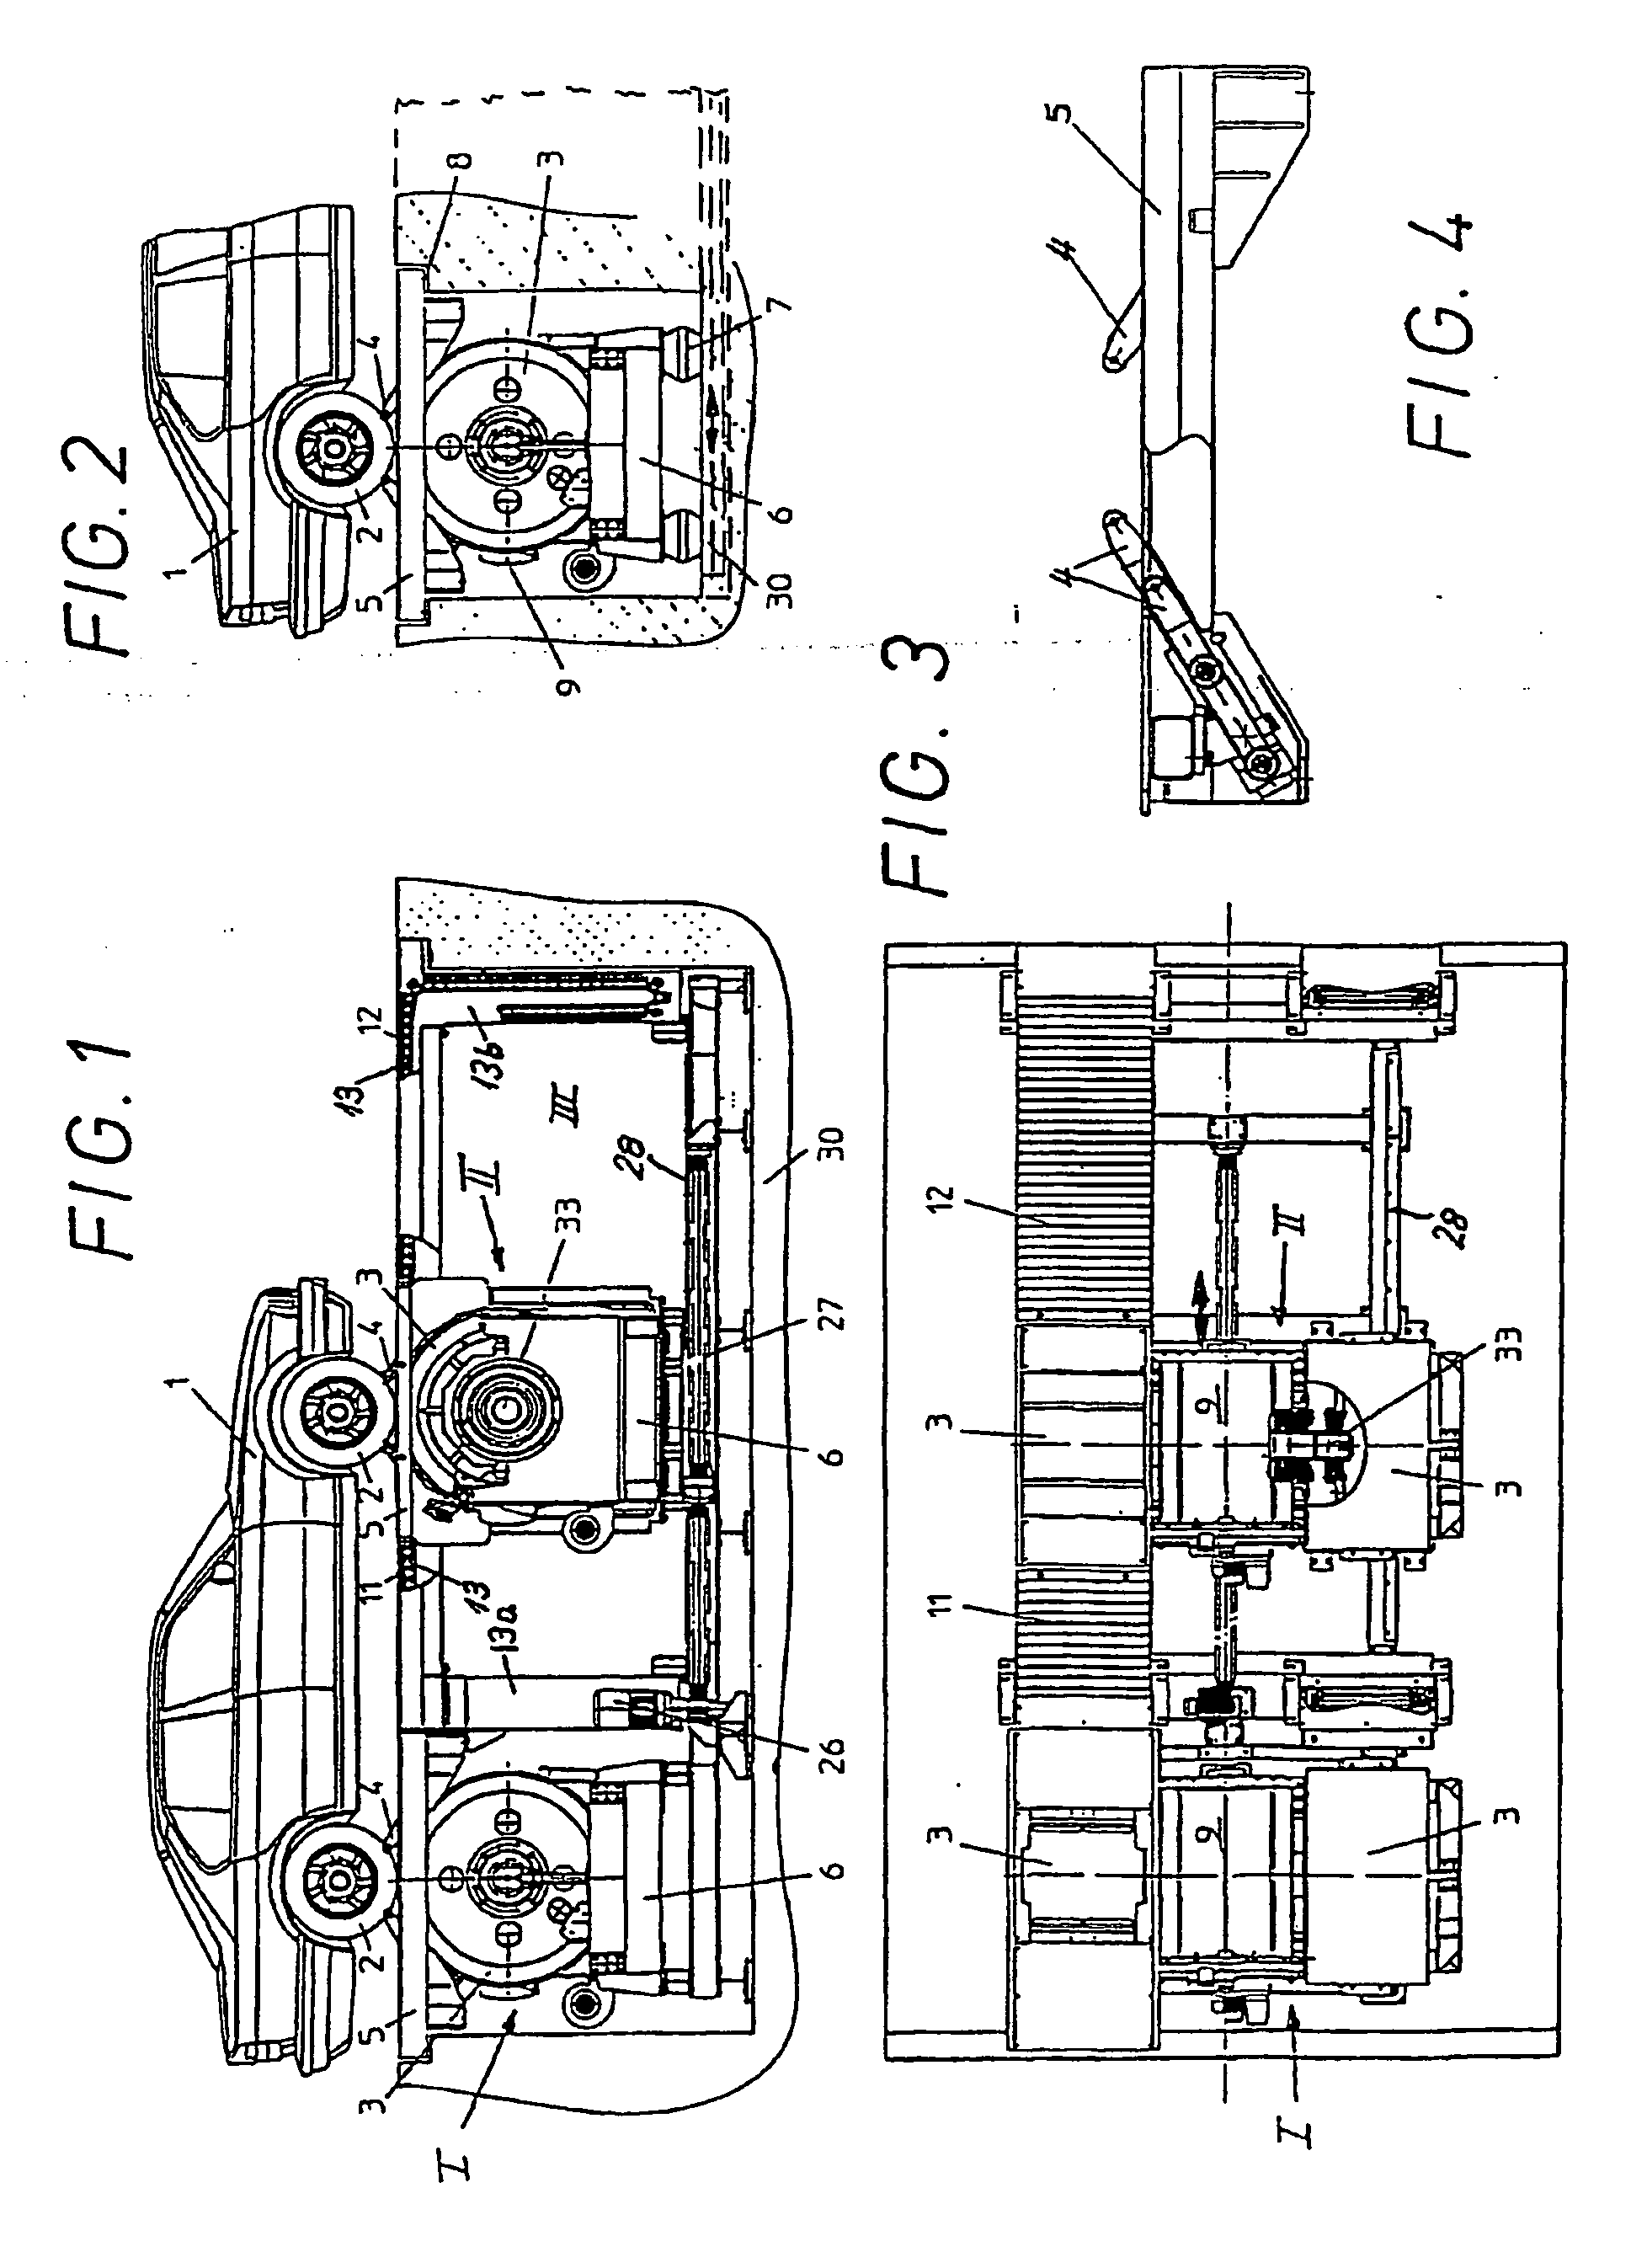 Patent EP1039282B2 - Roll test bench for vehicles - Google Patents